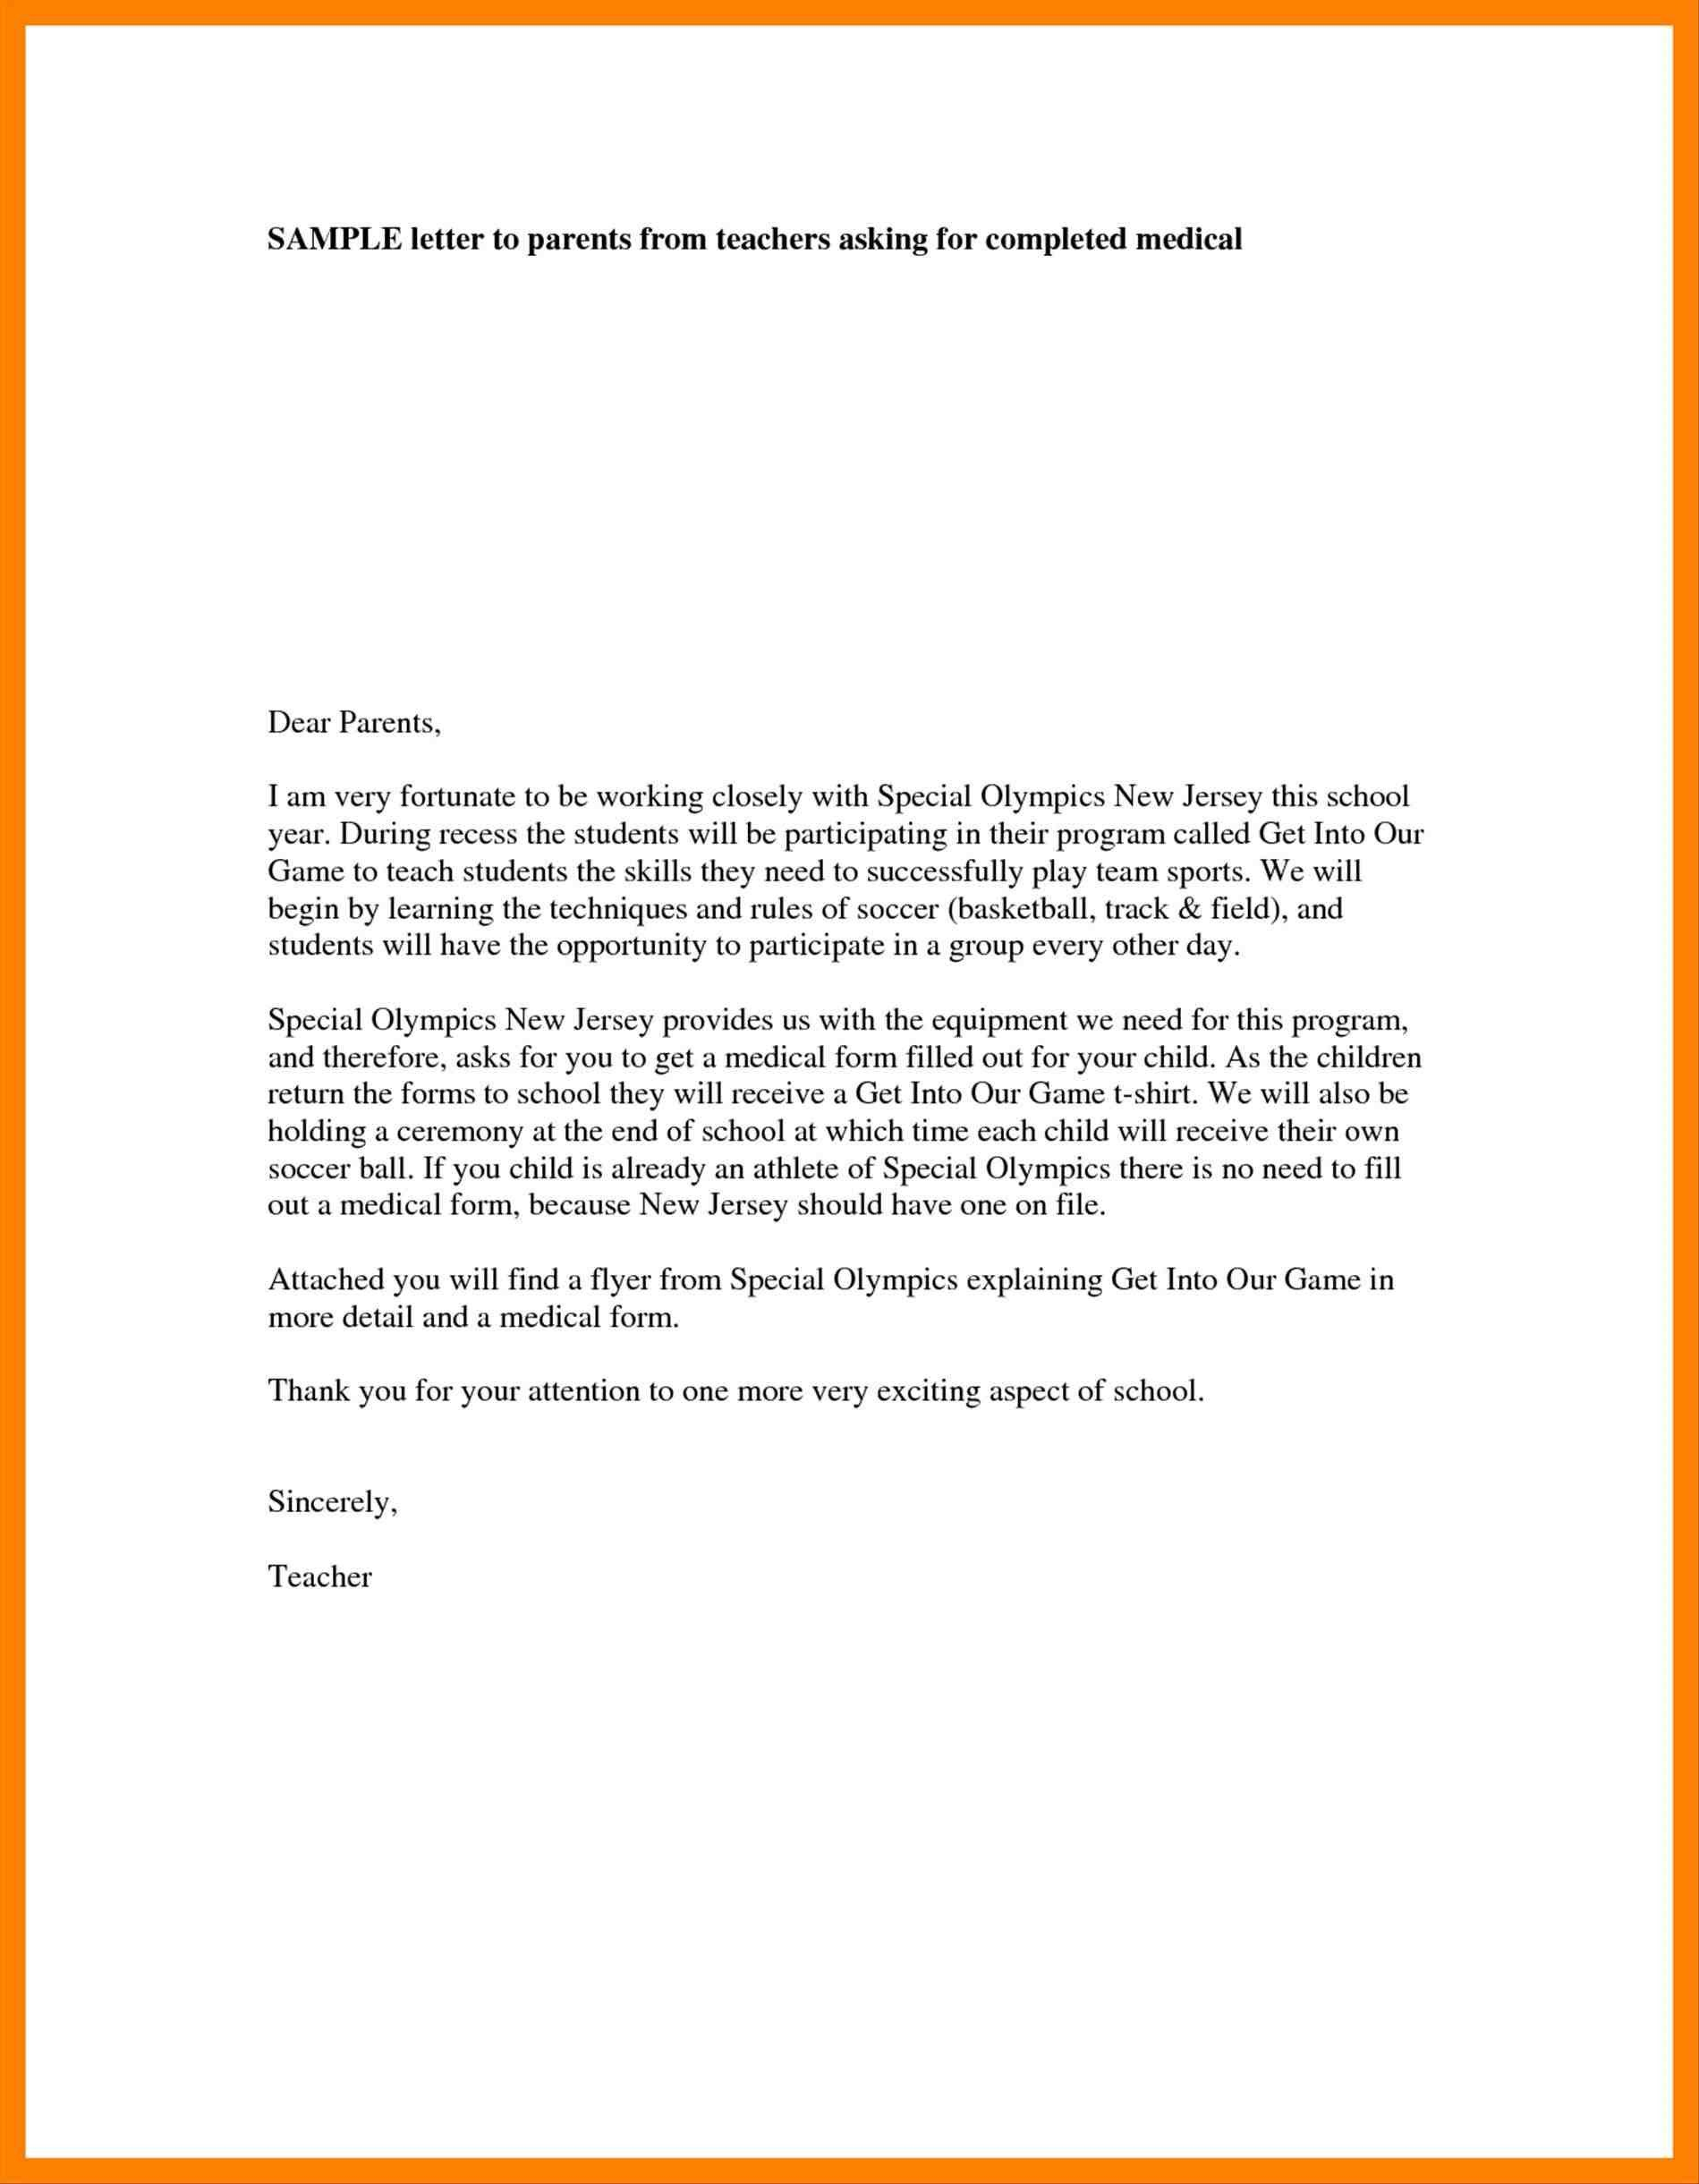 Free Templates Sample Welcome Letter To Parents From Teacher For Letter To Parents Template From Teachers